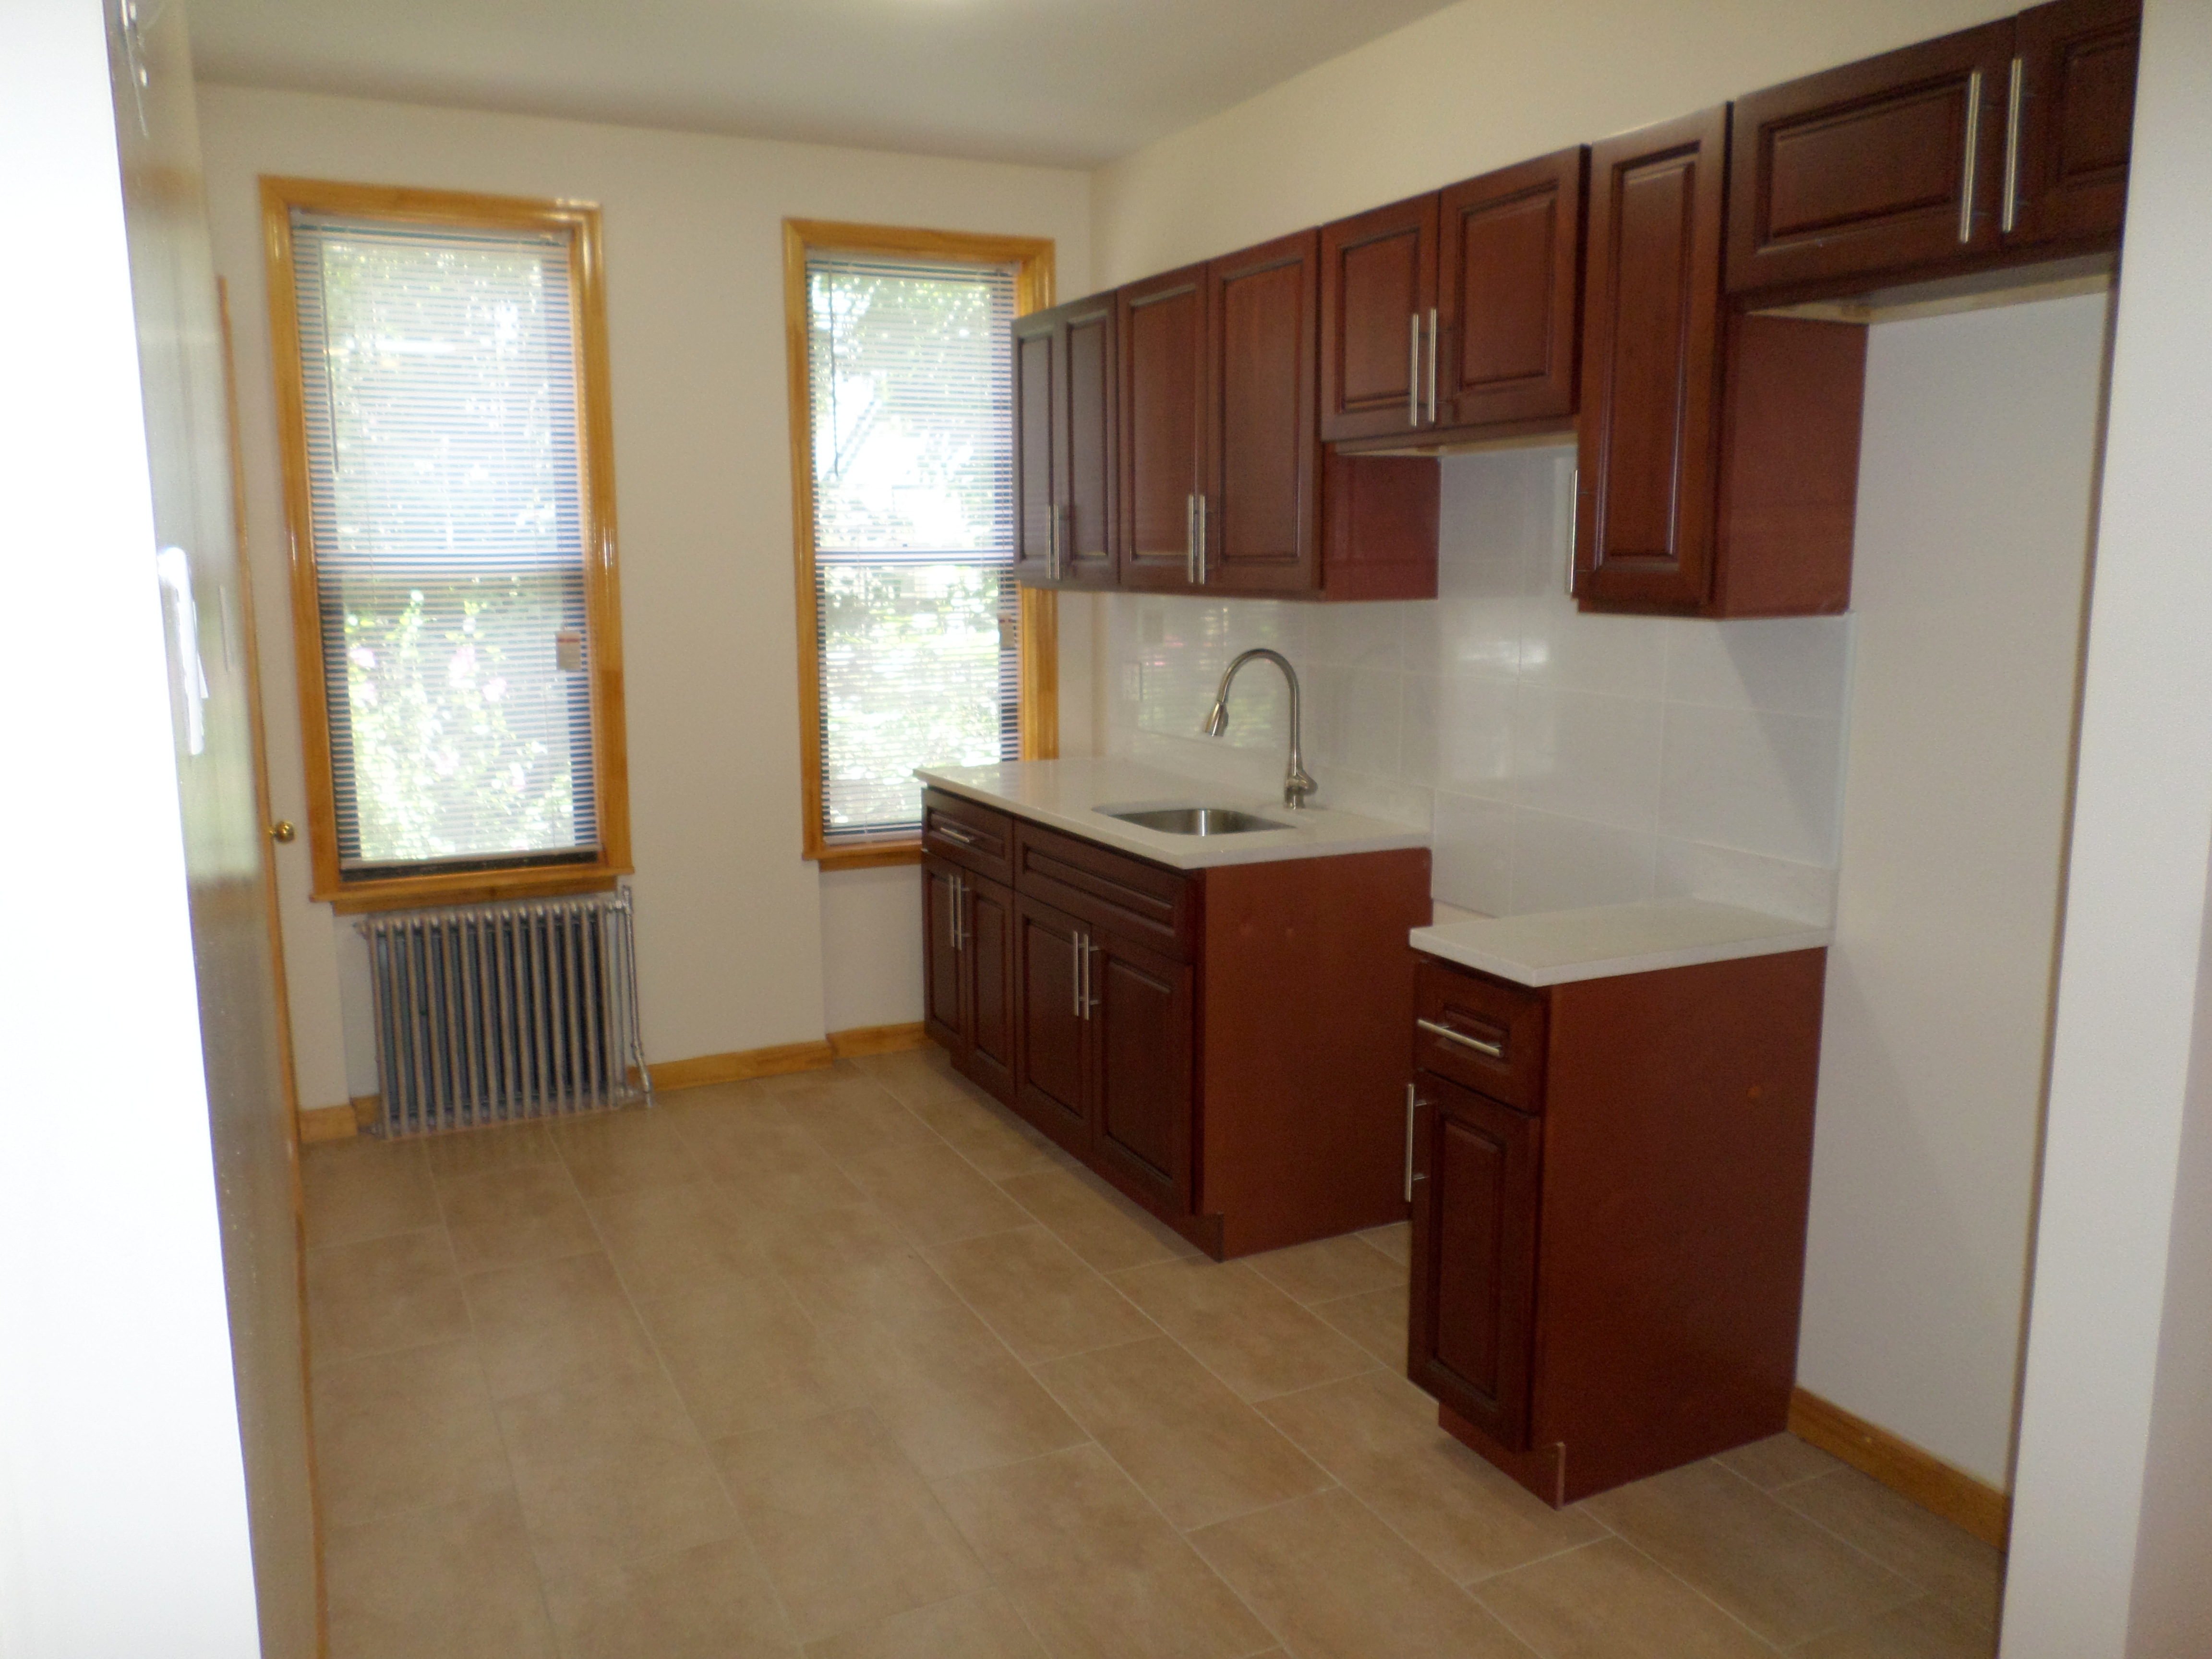 ID#: 1322302, Newly Renovated 2 Bedroom Apartment For Rent In Ridgewood